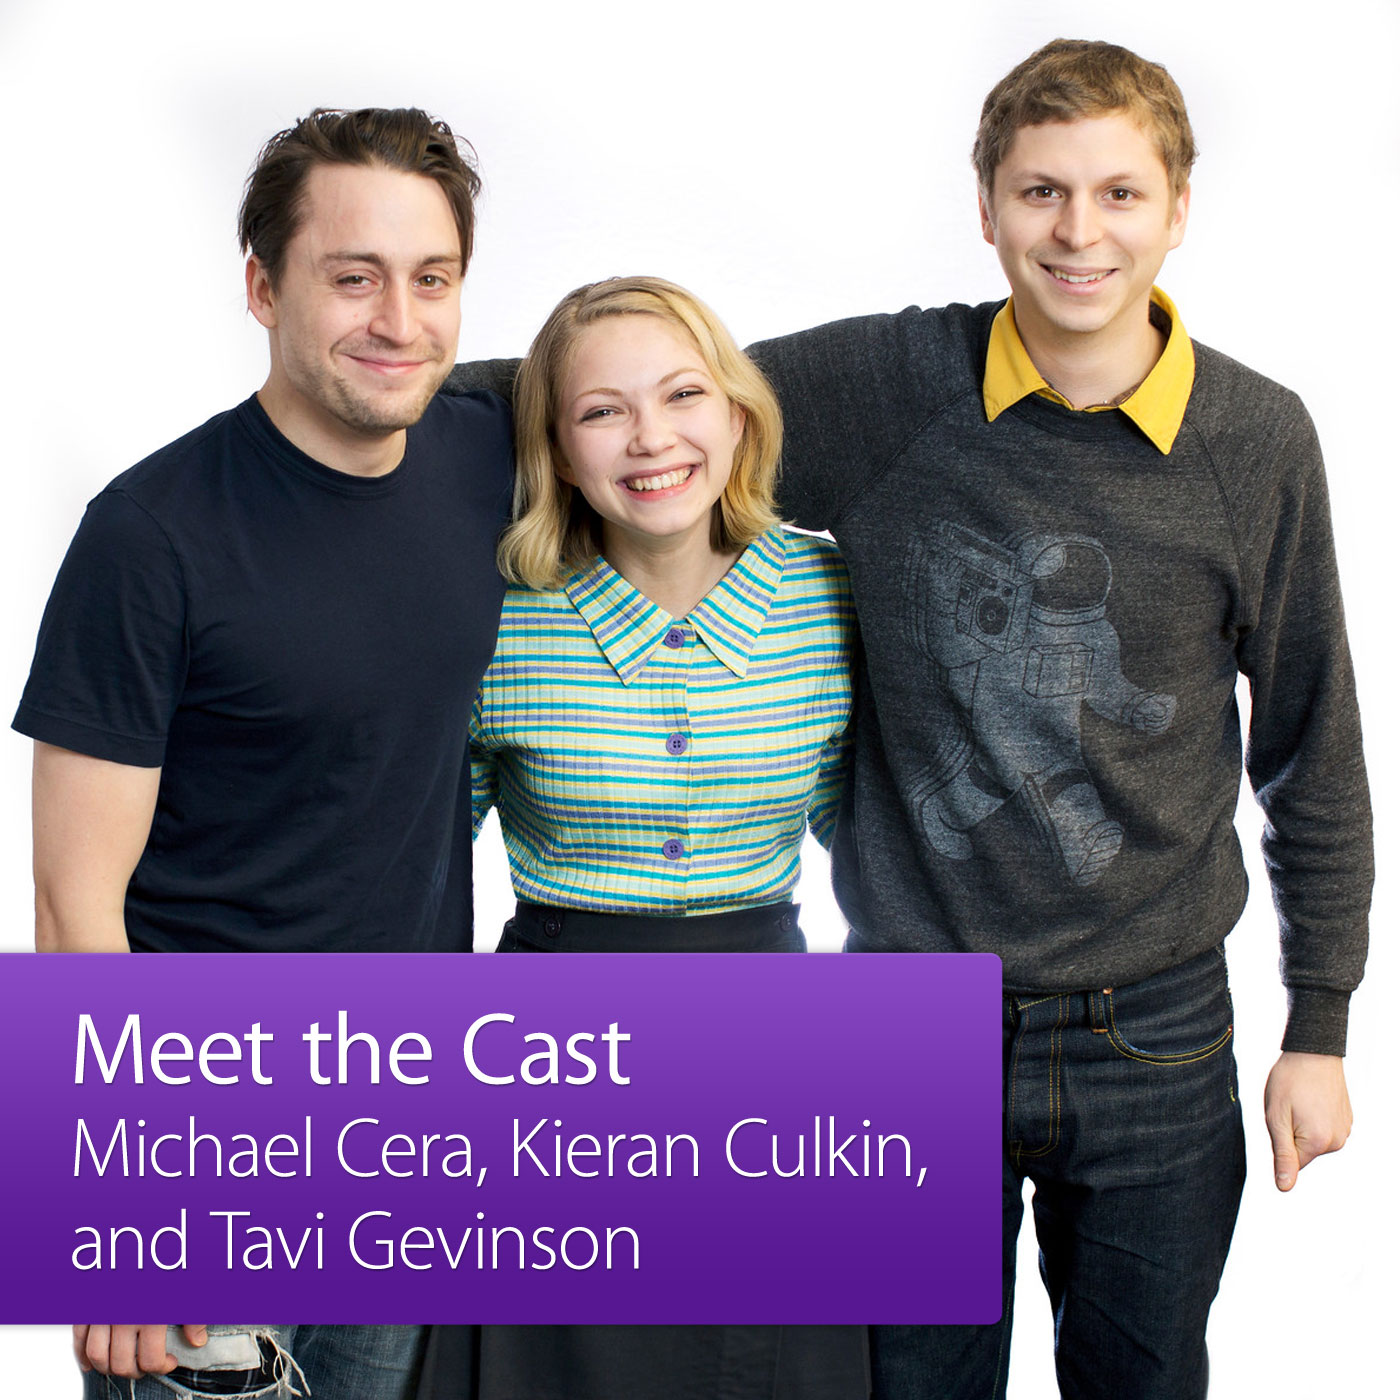 Michael Cera, Kieran Culkin, and Tavi Gevinson: Meet the Cast